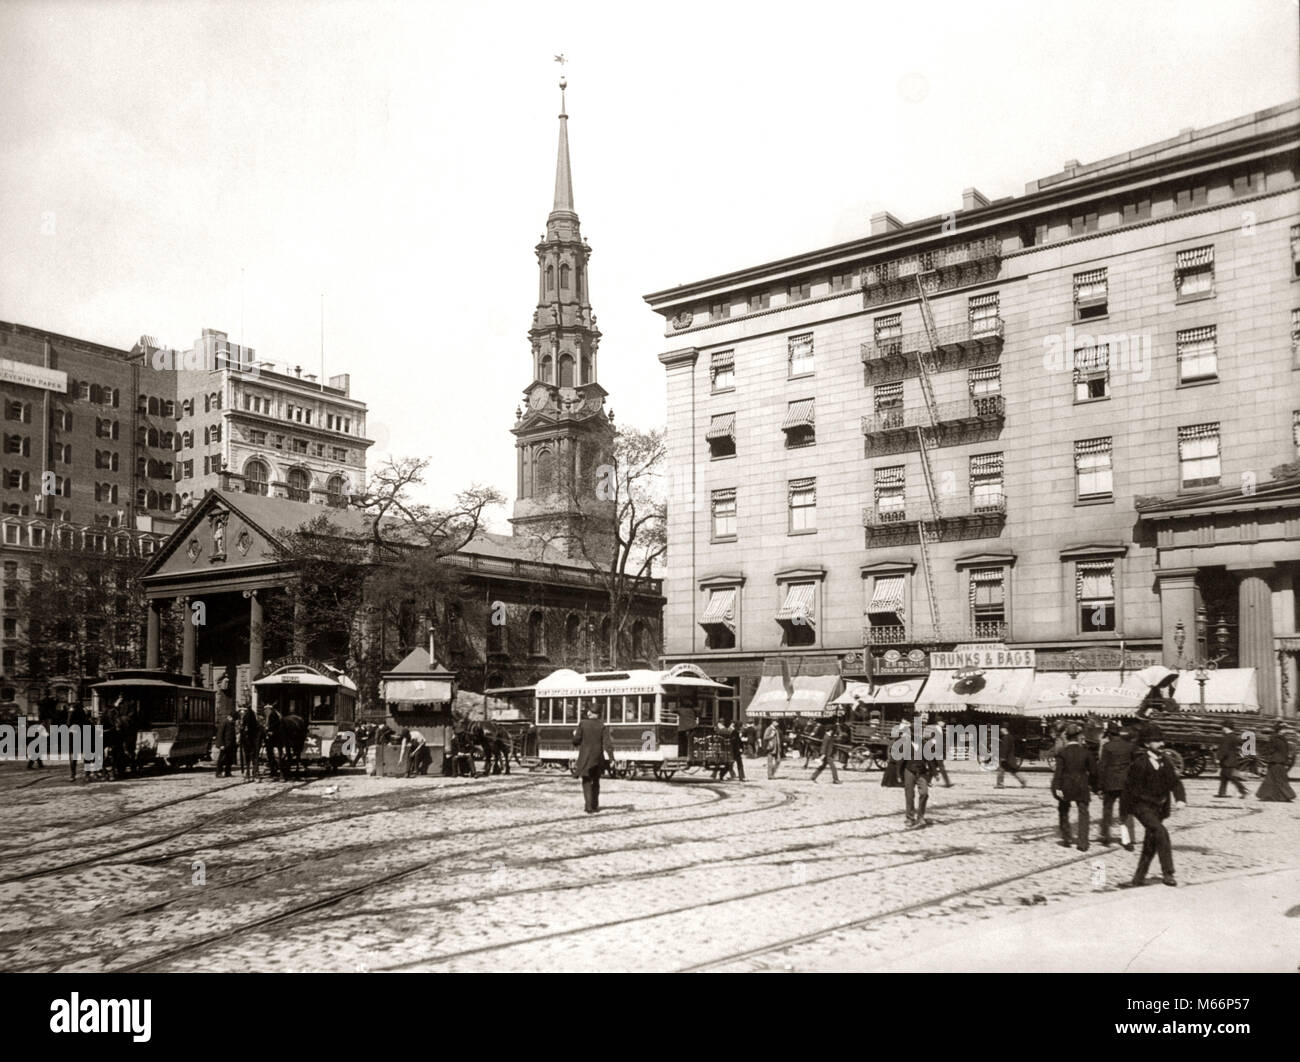 1800s 1890s 1900s NYC HORSE DRAWN STREET CAR TROLLEYS AT SAINT PAUL'S CHAPEL BUILT IN 1766 NEW YORK CITY USA - q41010 Stock Photo